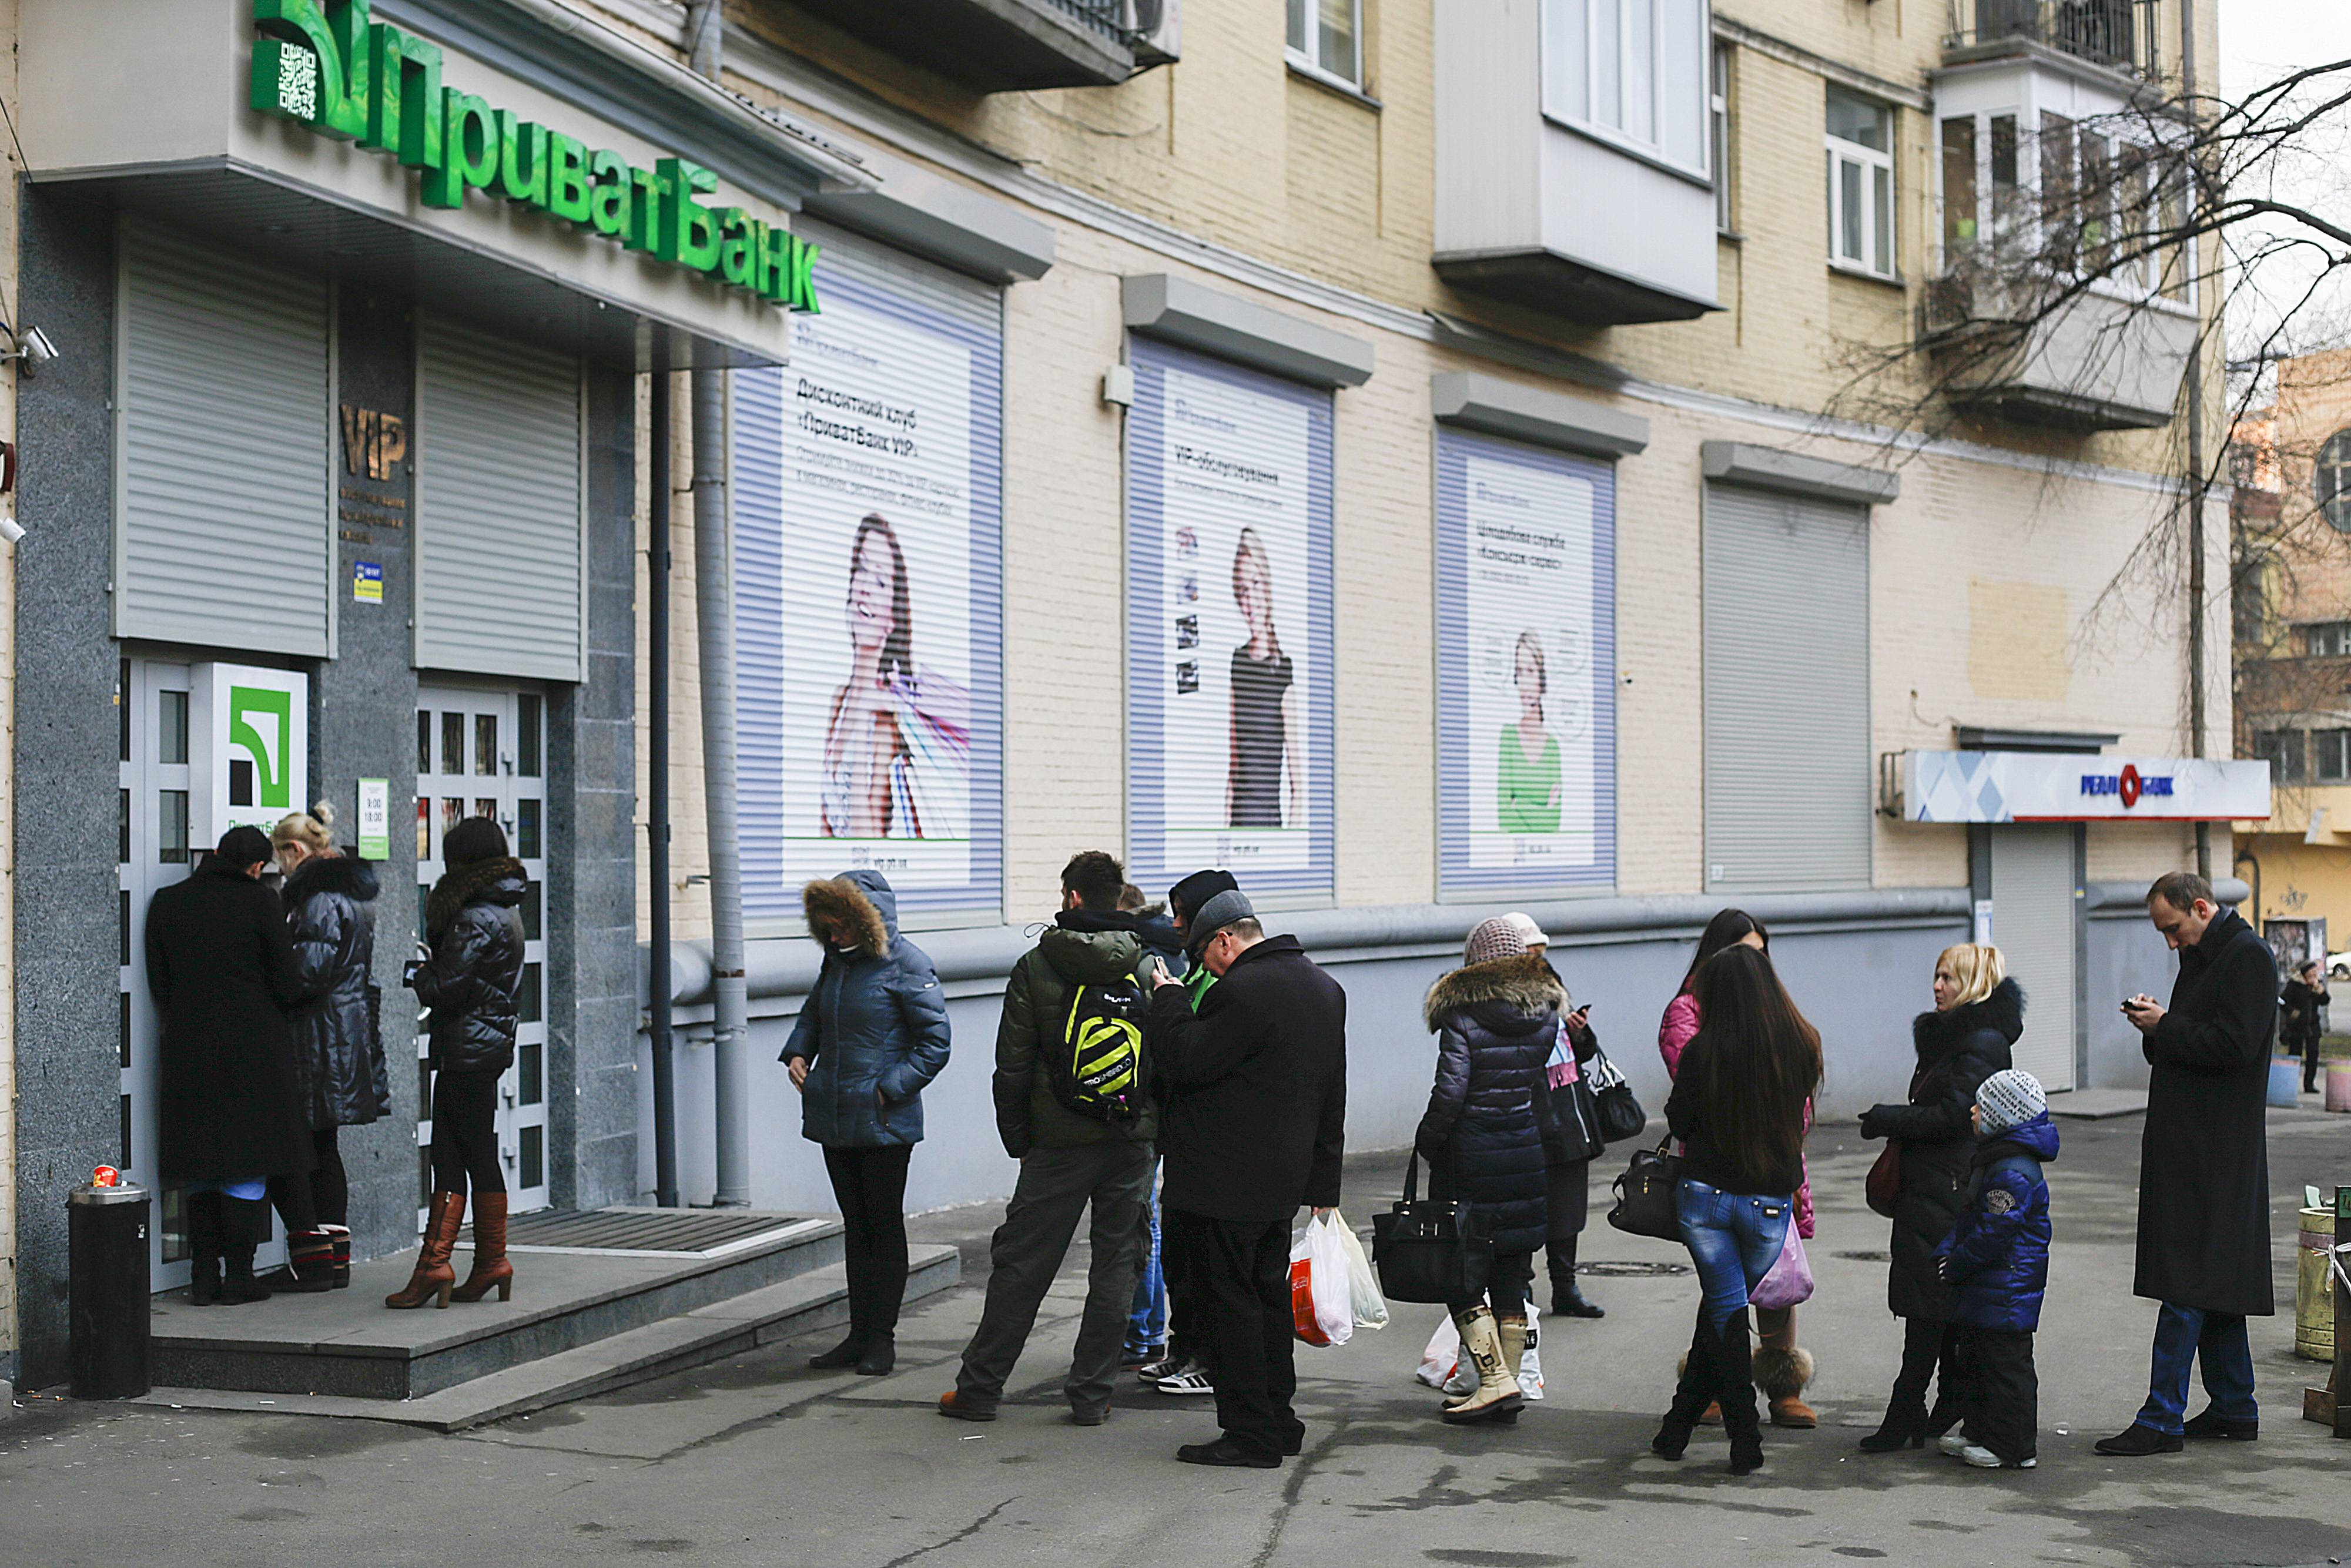 Customers queue to withdraw currency from an automated teller machine in Kiev, Ukraine, Thursday. Western nations, including the U.S., are considering sanctions against the Ukraine government.